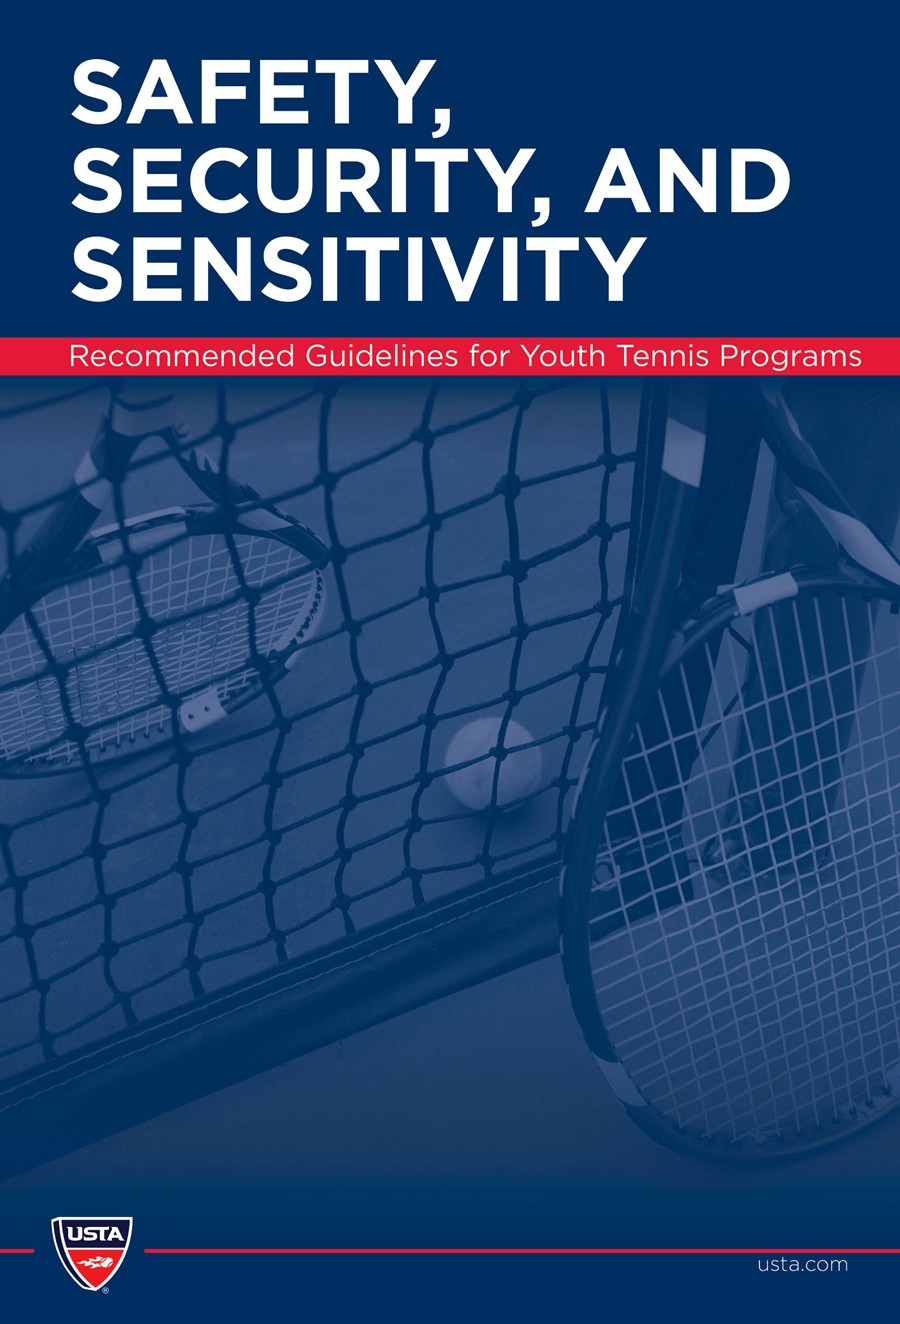 USTA 2012 Safety, Security and Sensitivity handbook